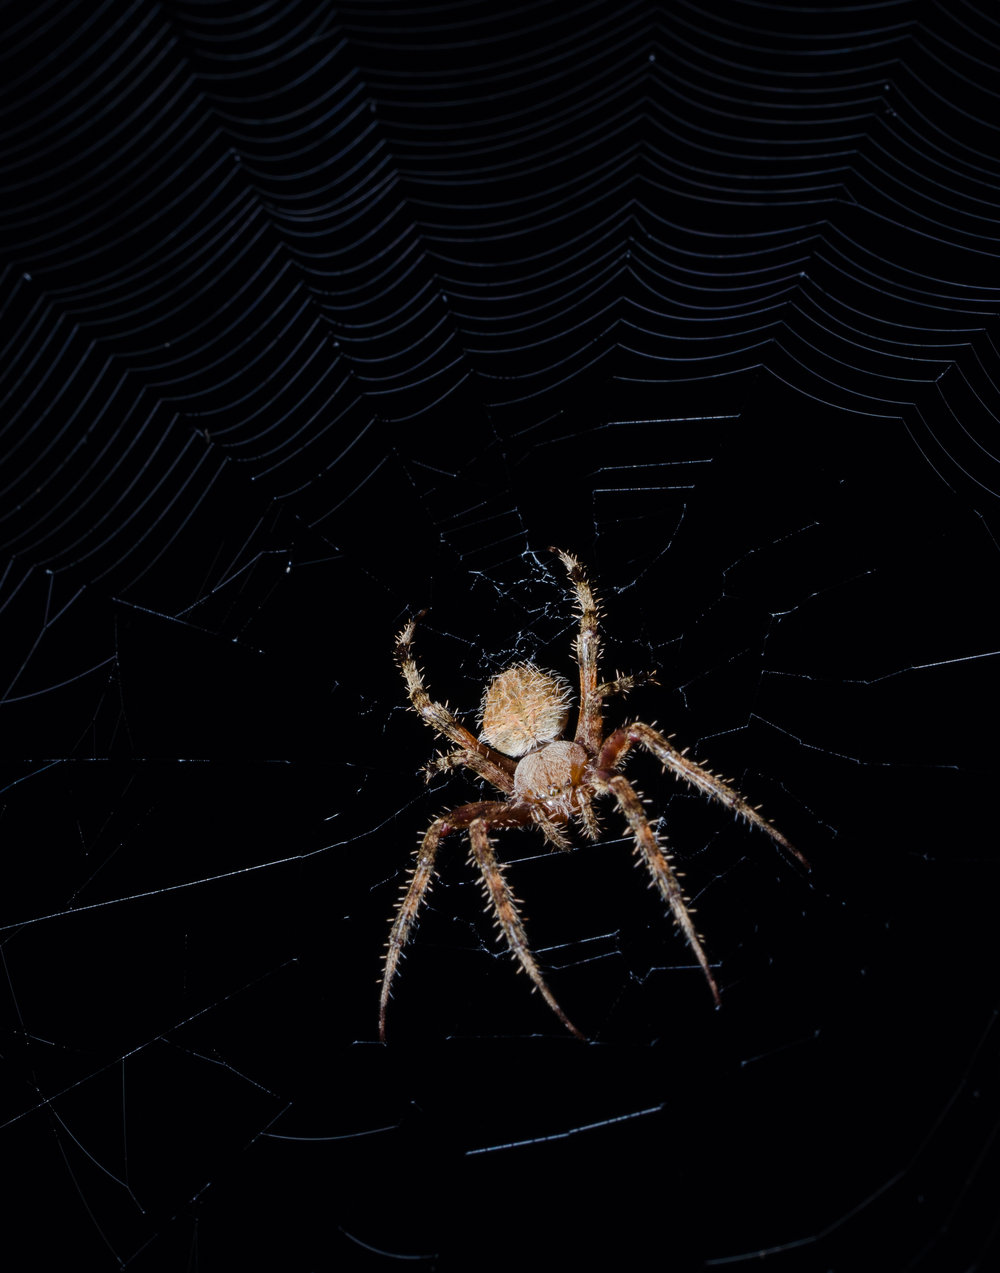 Spider getting ready for dinner